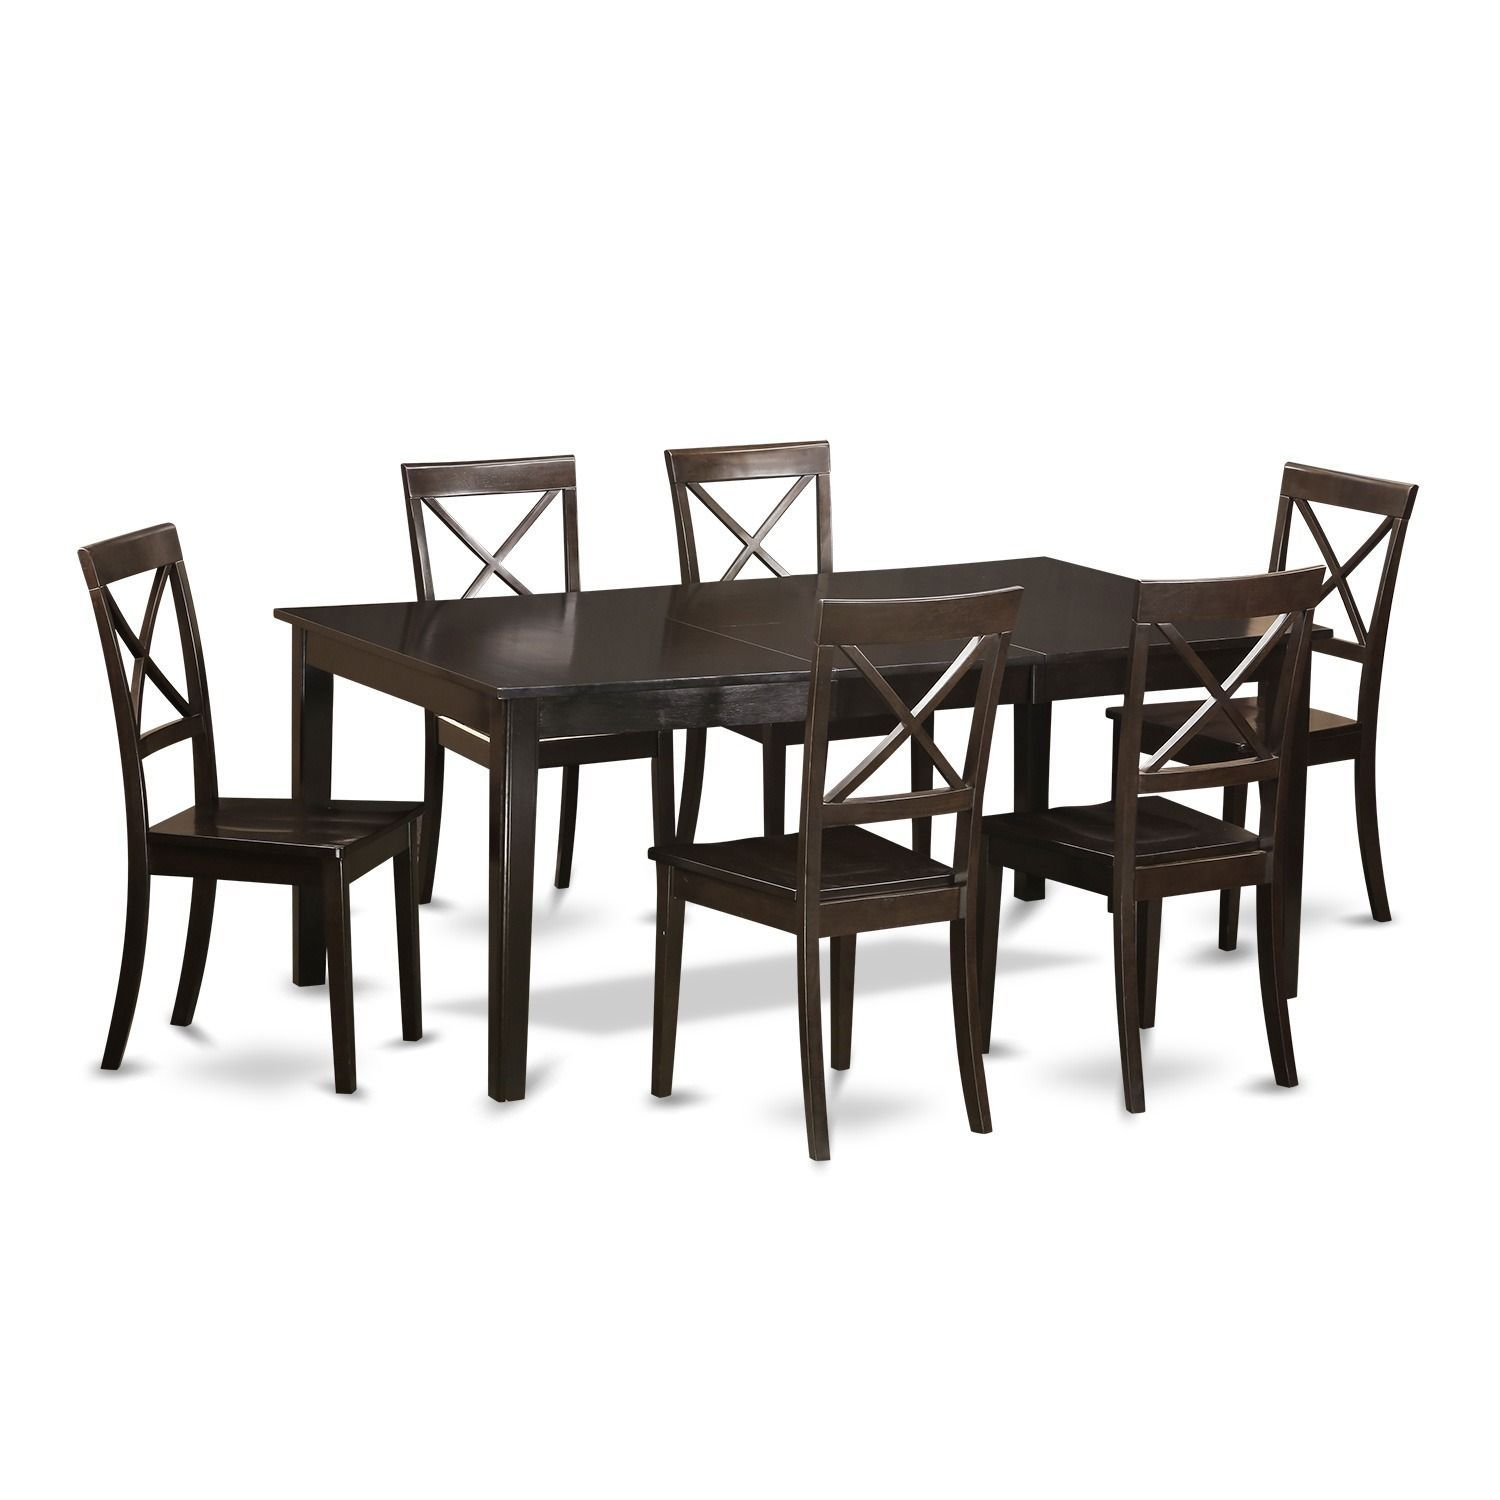 HEBO7-CAP Cappucino Wood Dining Table and 6 Dinette Chairs (Wood Seat), Black, Size 7-Piece Sets